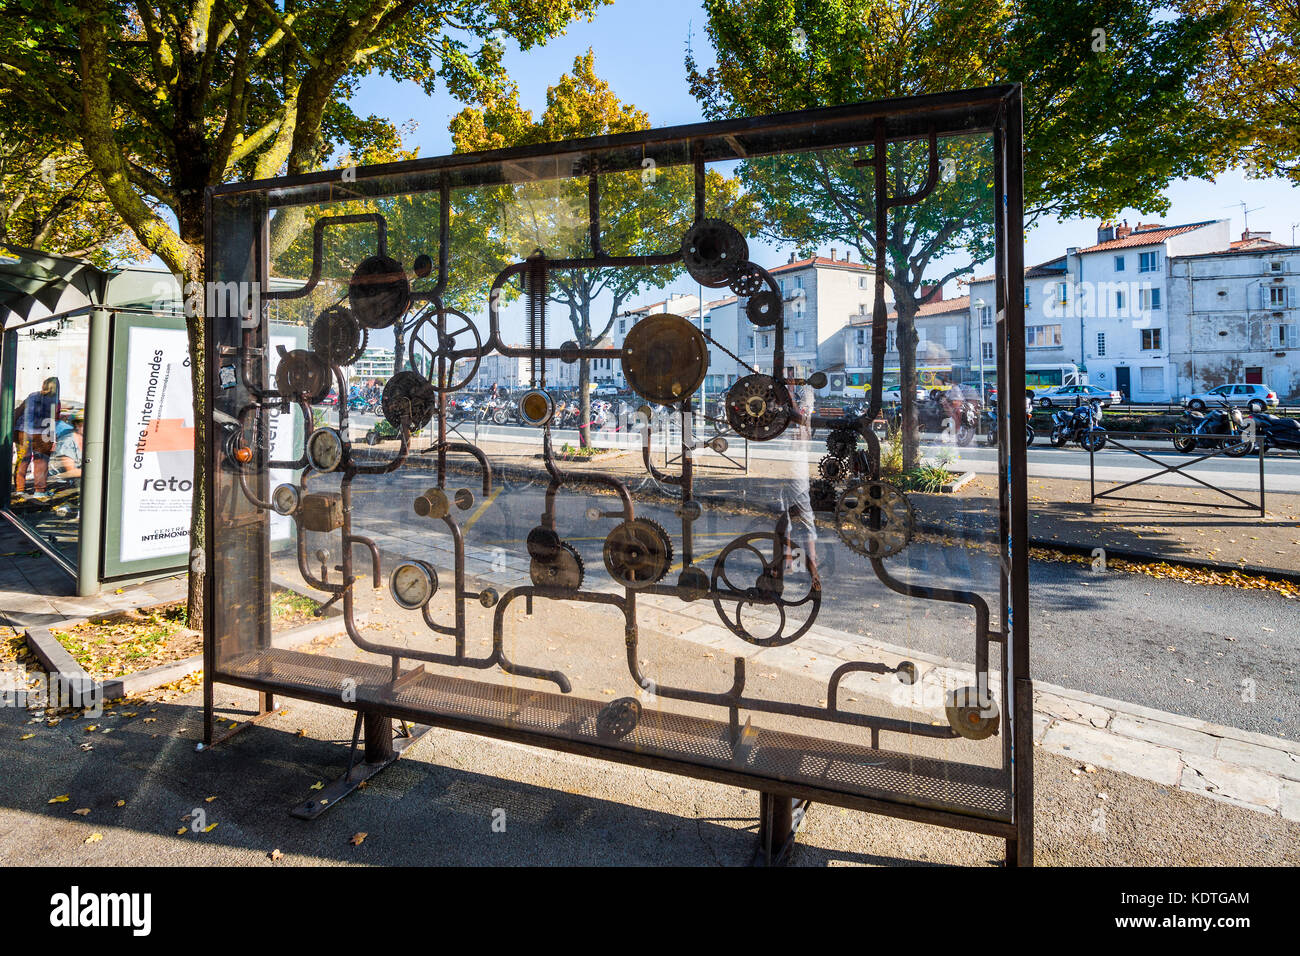 Sculptural screen in bus shelter, La Rochelle, France. - Stock Image